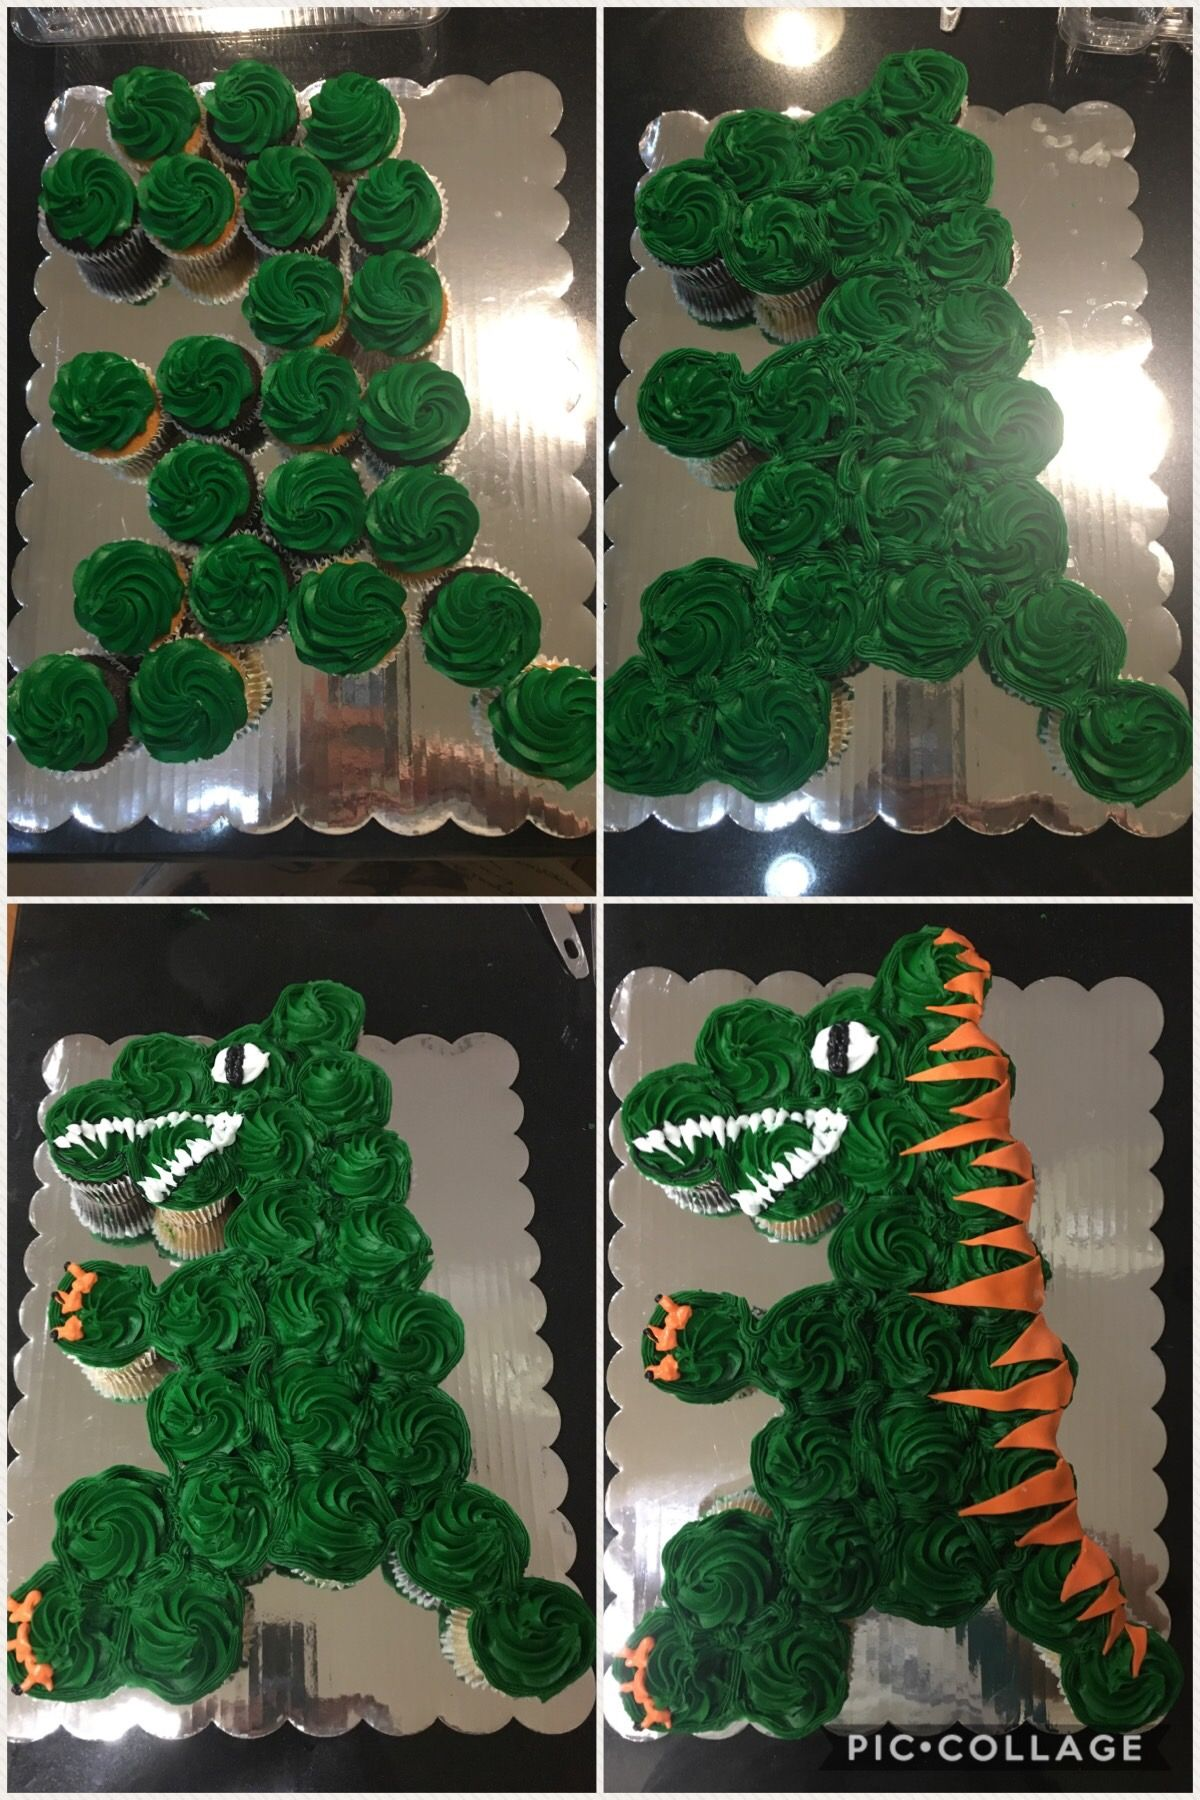 Home Made T Rex Dinosaur Cupcake Cake Using Grocery Store Bakery